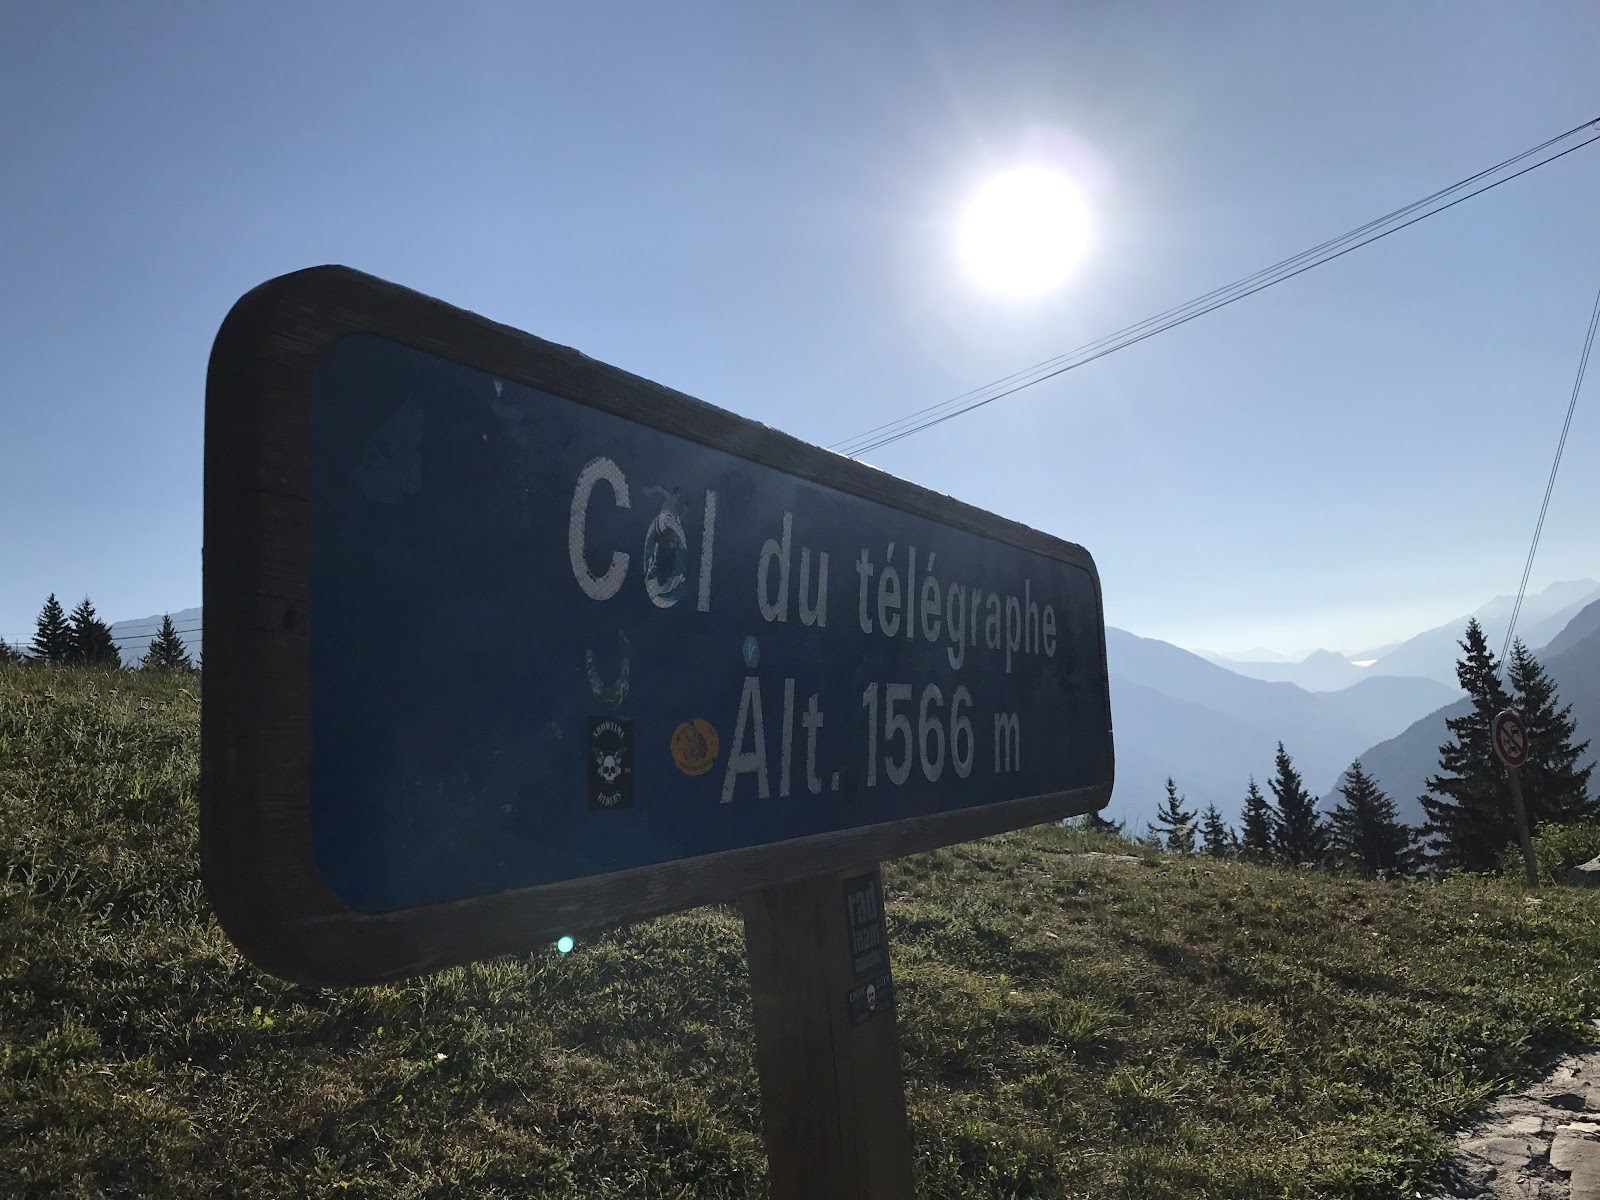 Bicycle ride up Col du Telegraphe and Col du Galibier - altitude sign at Col du Telegraphe